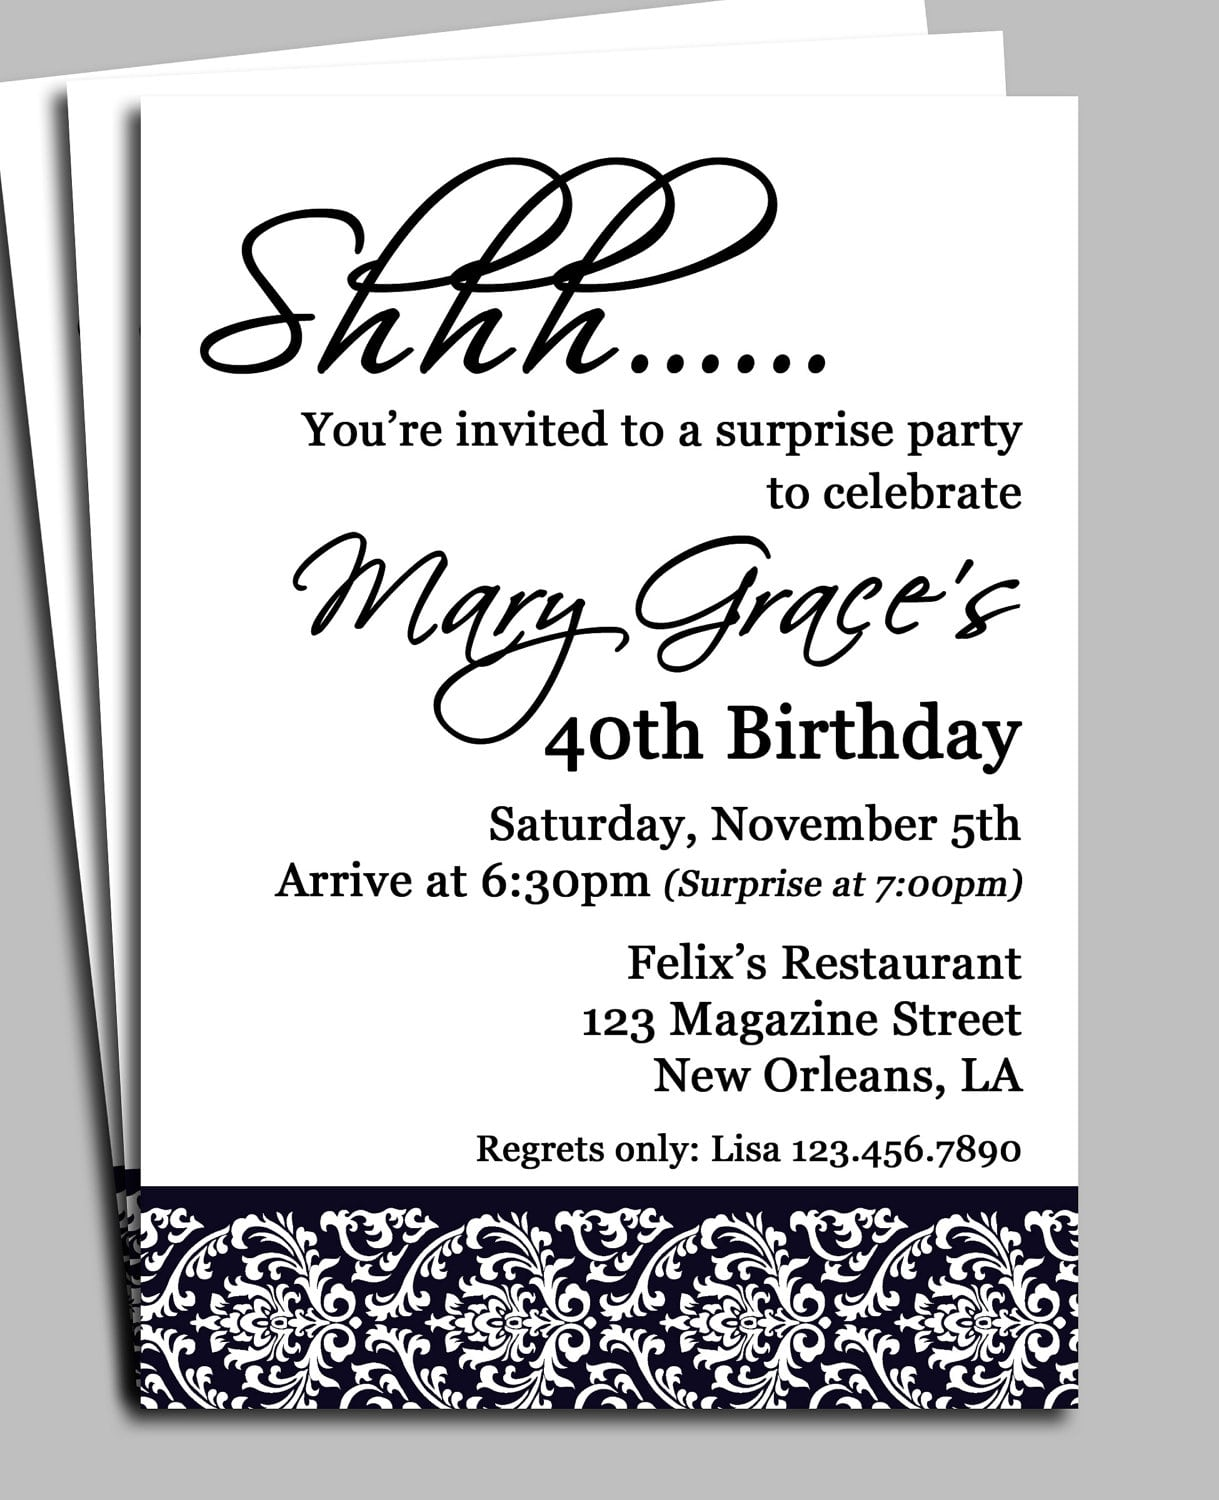 Surprise Party Invitation Peellandfmtk - 25th birthday invitation templates